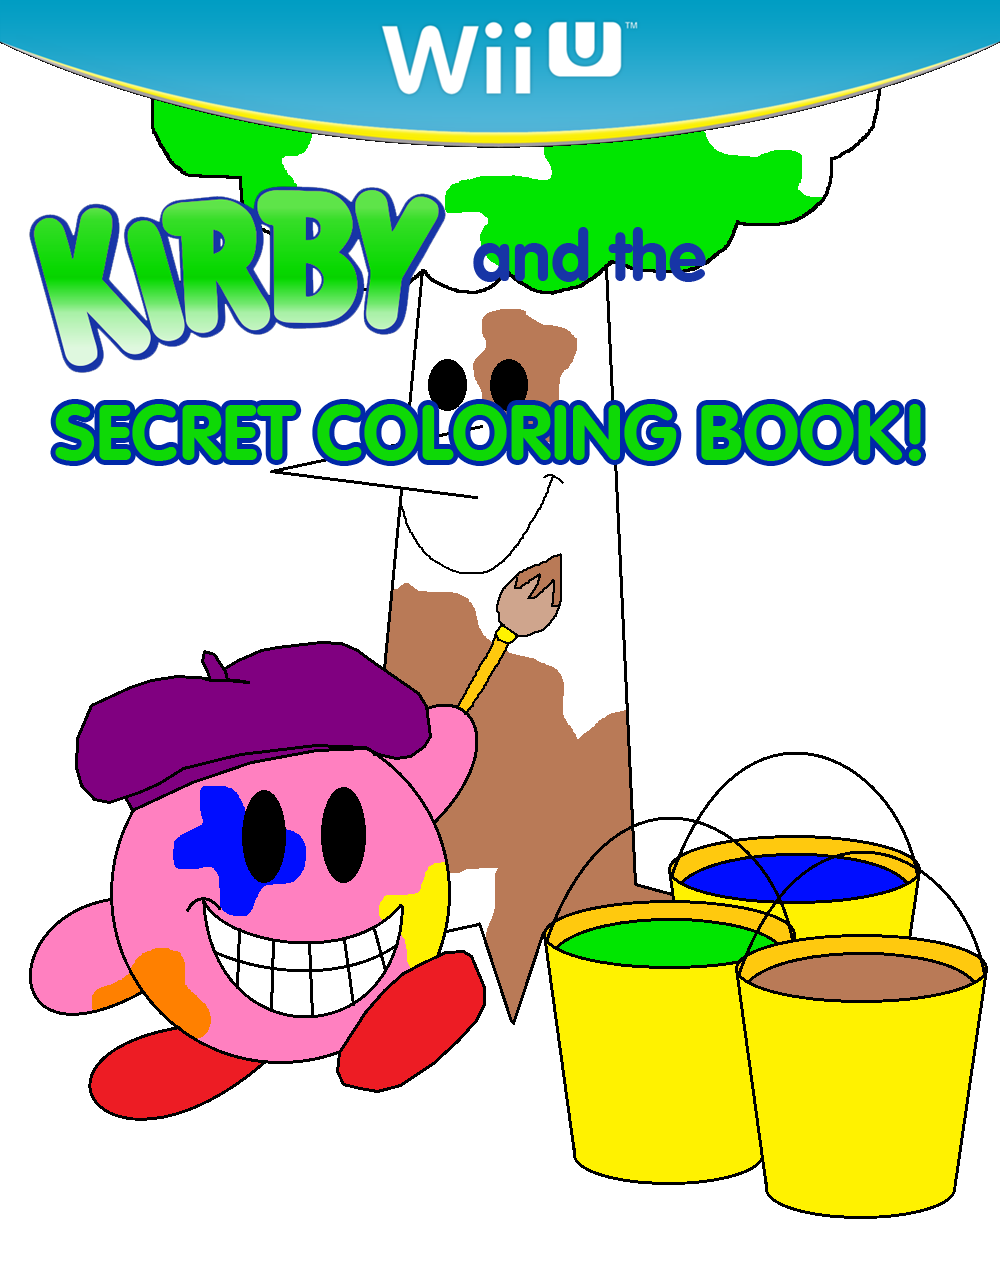 Kirby and The Secret Coloring Book